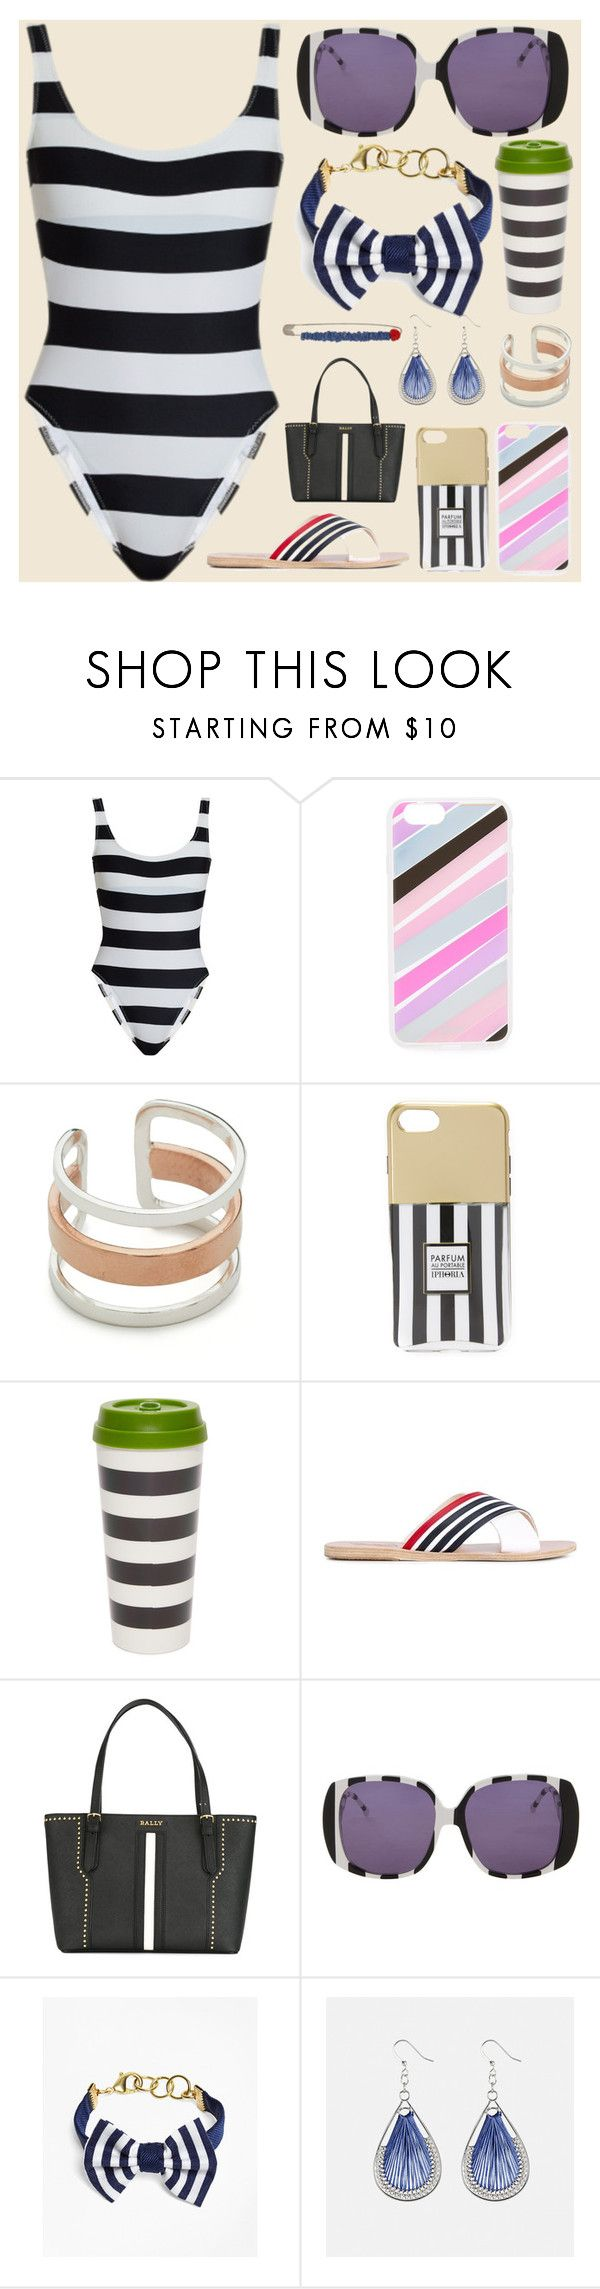 """Beatch things"" by camry-brynn ❤ liked on Polyvore featuring Norma Kamali, Maya Magal, Iphoria, Kate Spade, Ancient Greek Sandals, Bally, Brooks Brothers, Avenue and Alice Visin"